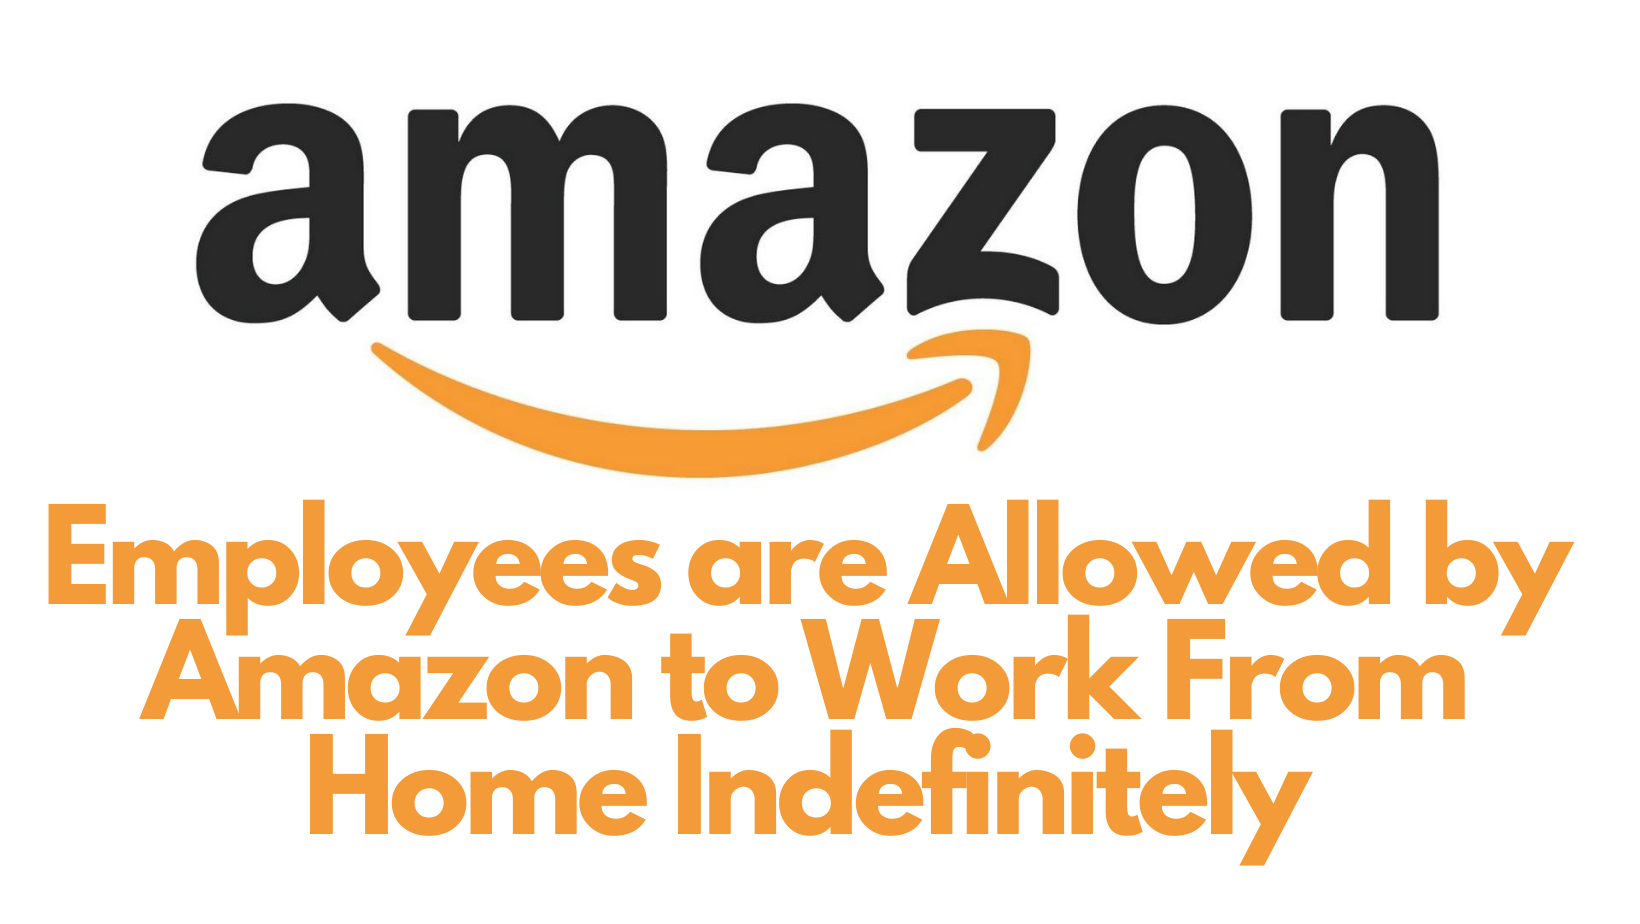 Employees are Allowed by Amazon to Work From Home Indefinitely